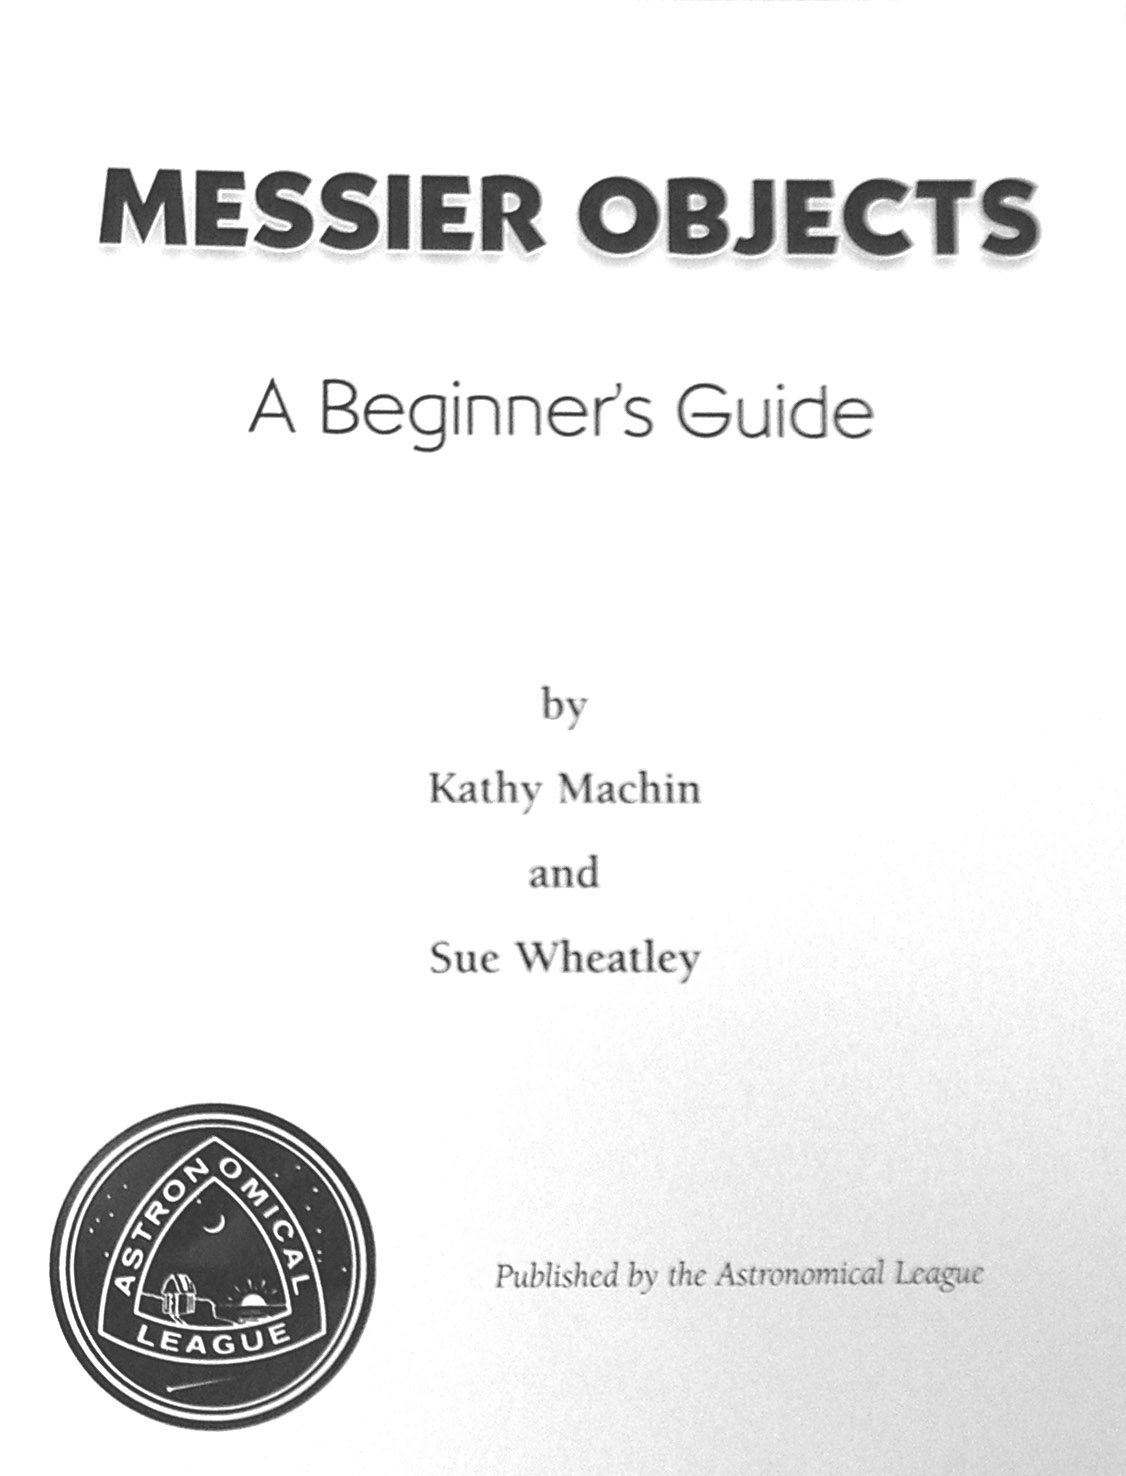 Messier Objects: A Beginner's Guide